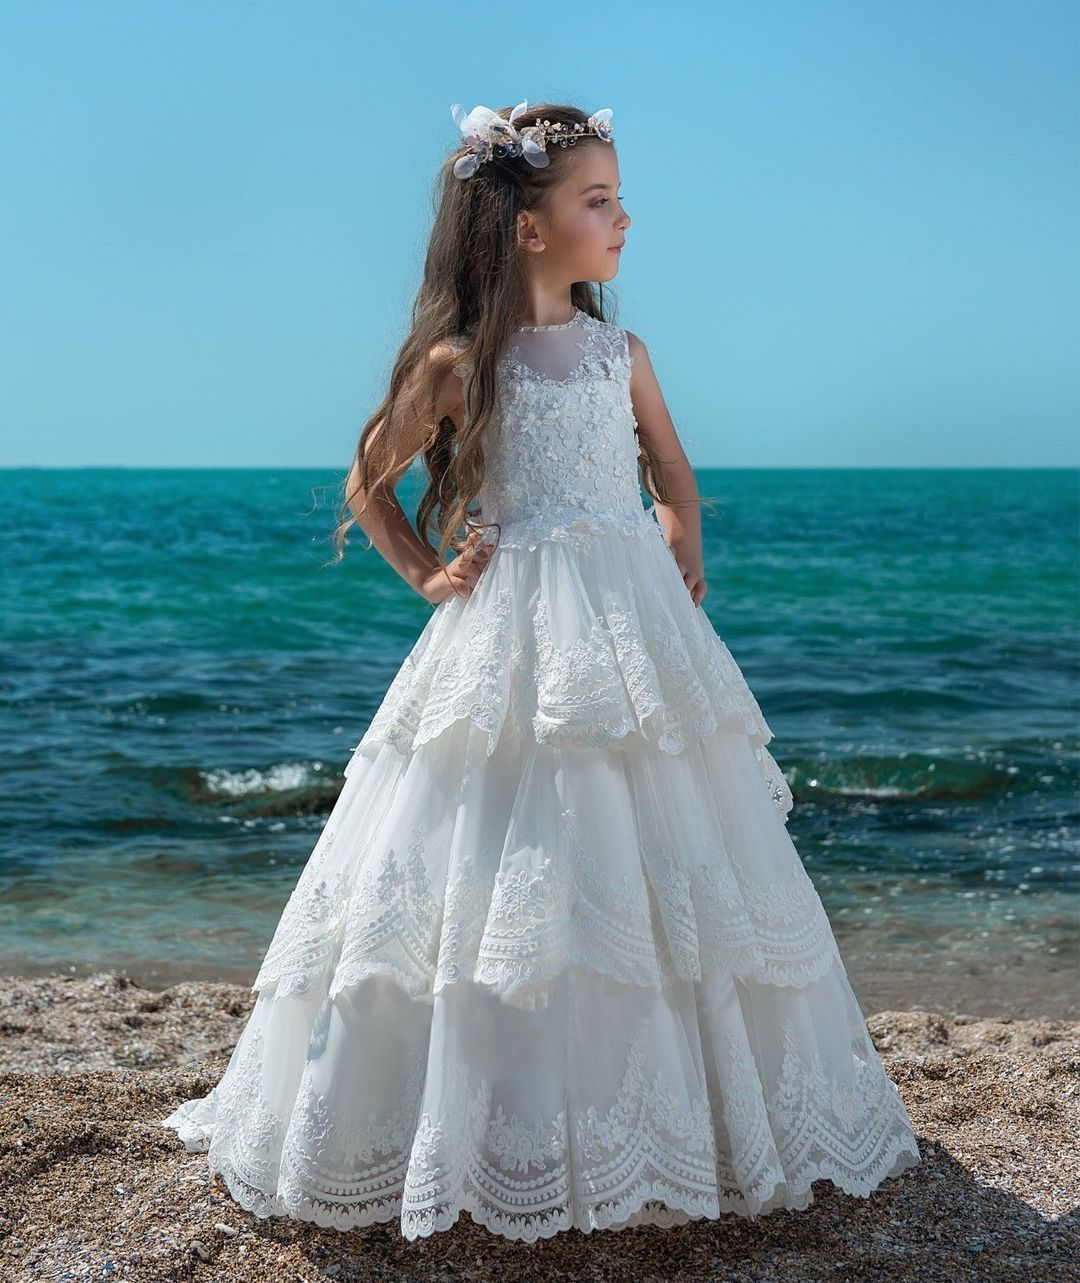 Lace Flower Girl Dresses Princess Pageant Dresses Kids\' Wedding ...